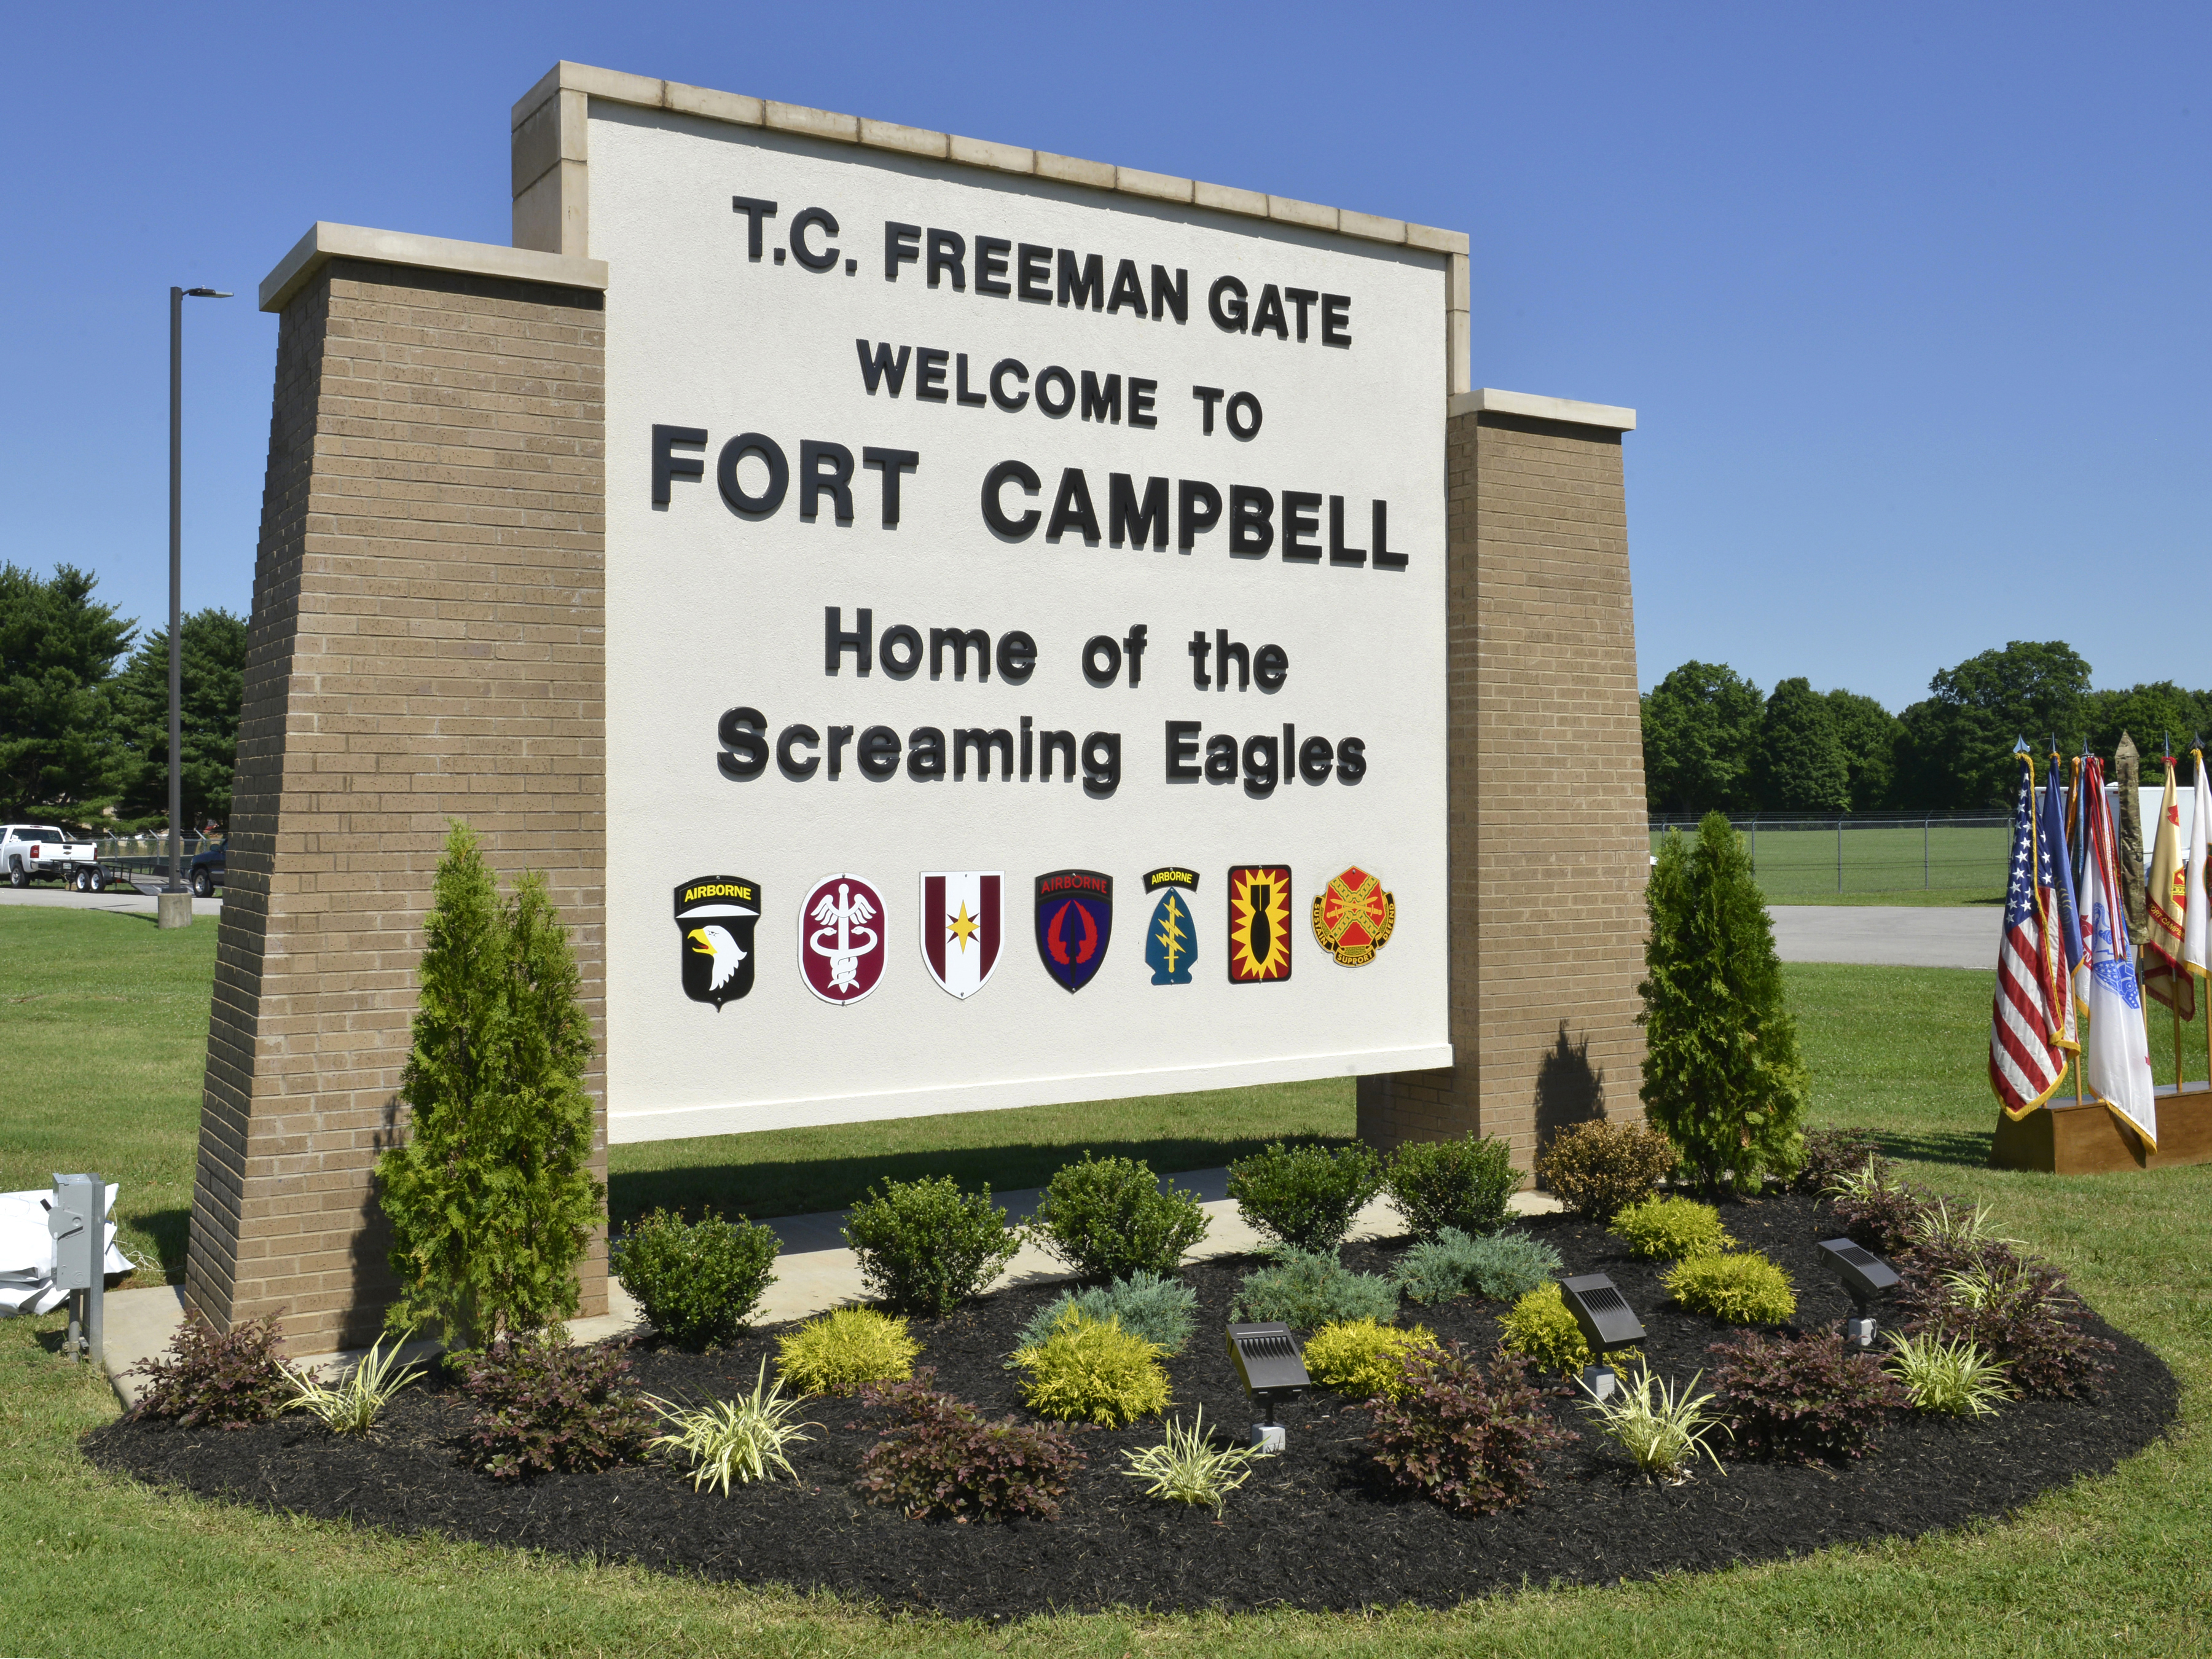 fort campbell sex chat Fort campbell, clarksville, hopkinsville, buy, sell, trade has 62,811 members read these rules, your membership in this group depends on it these.